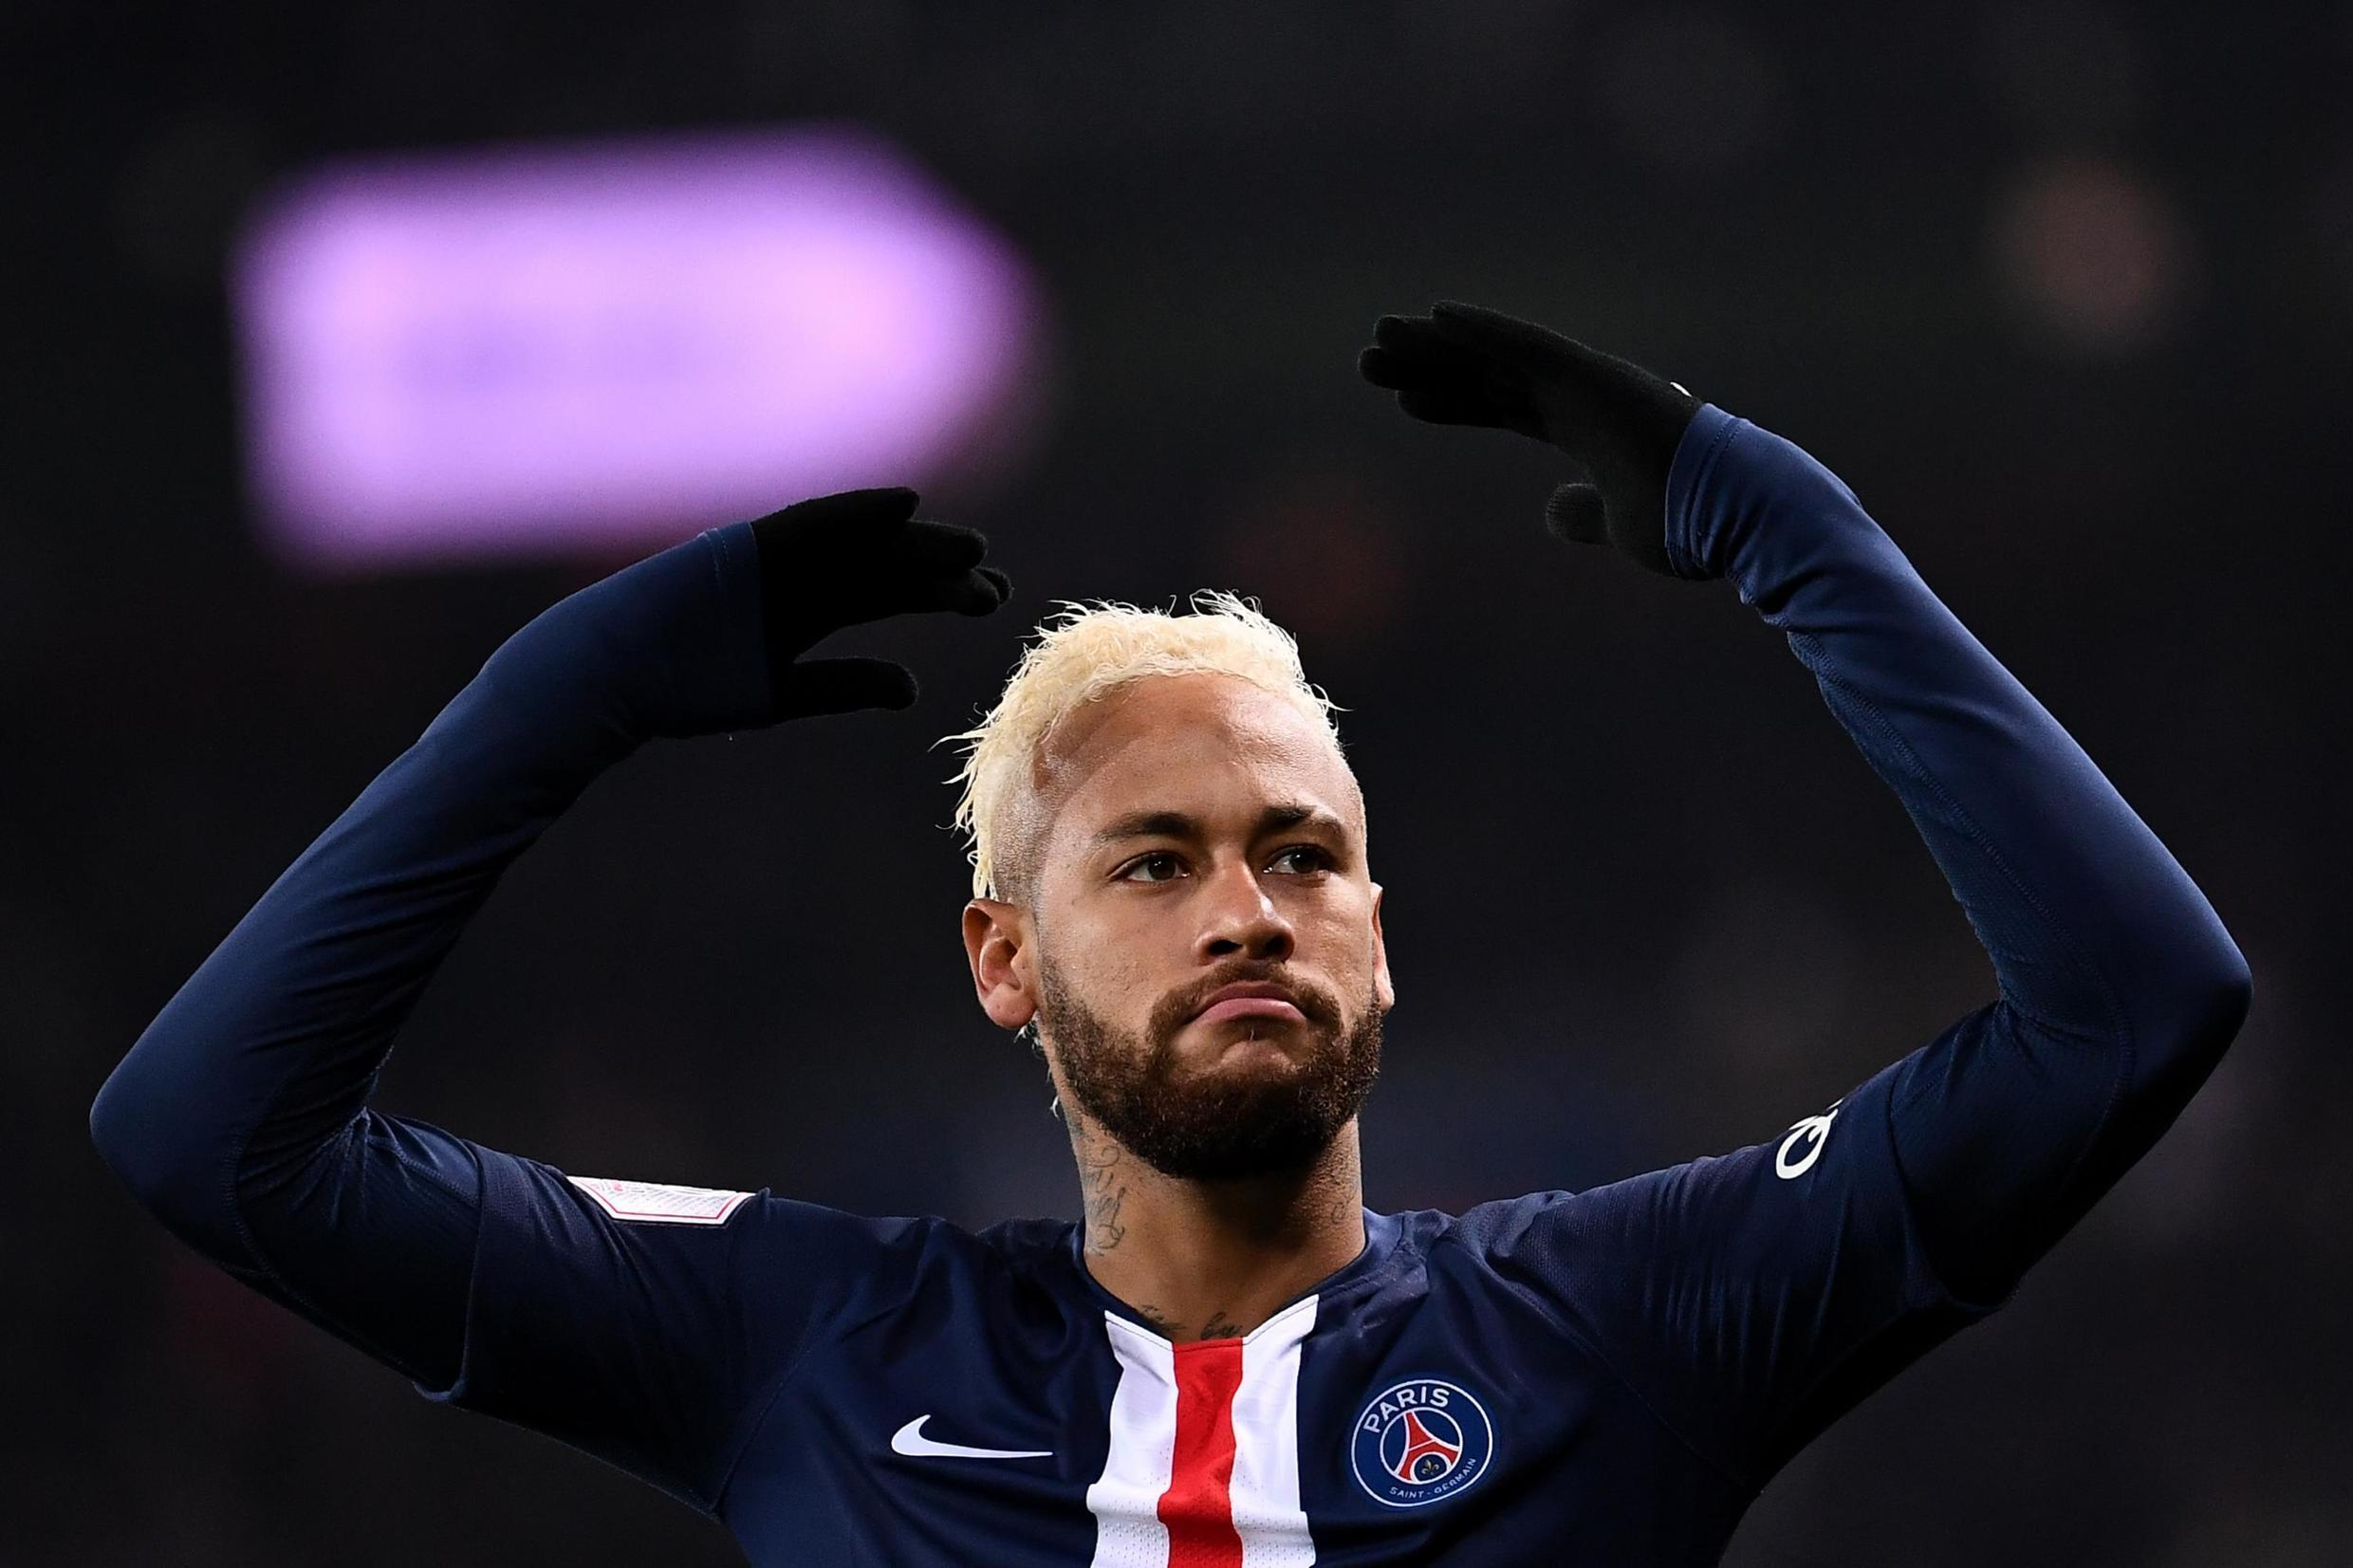 Neymar, who suffered a rib injury against Montpellier, will be absent from the PSG squad to face Nantes.